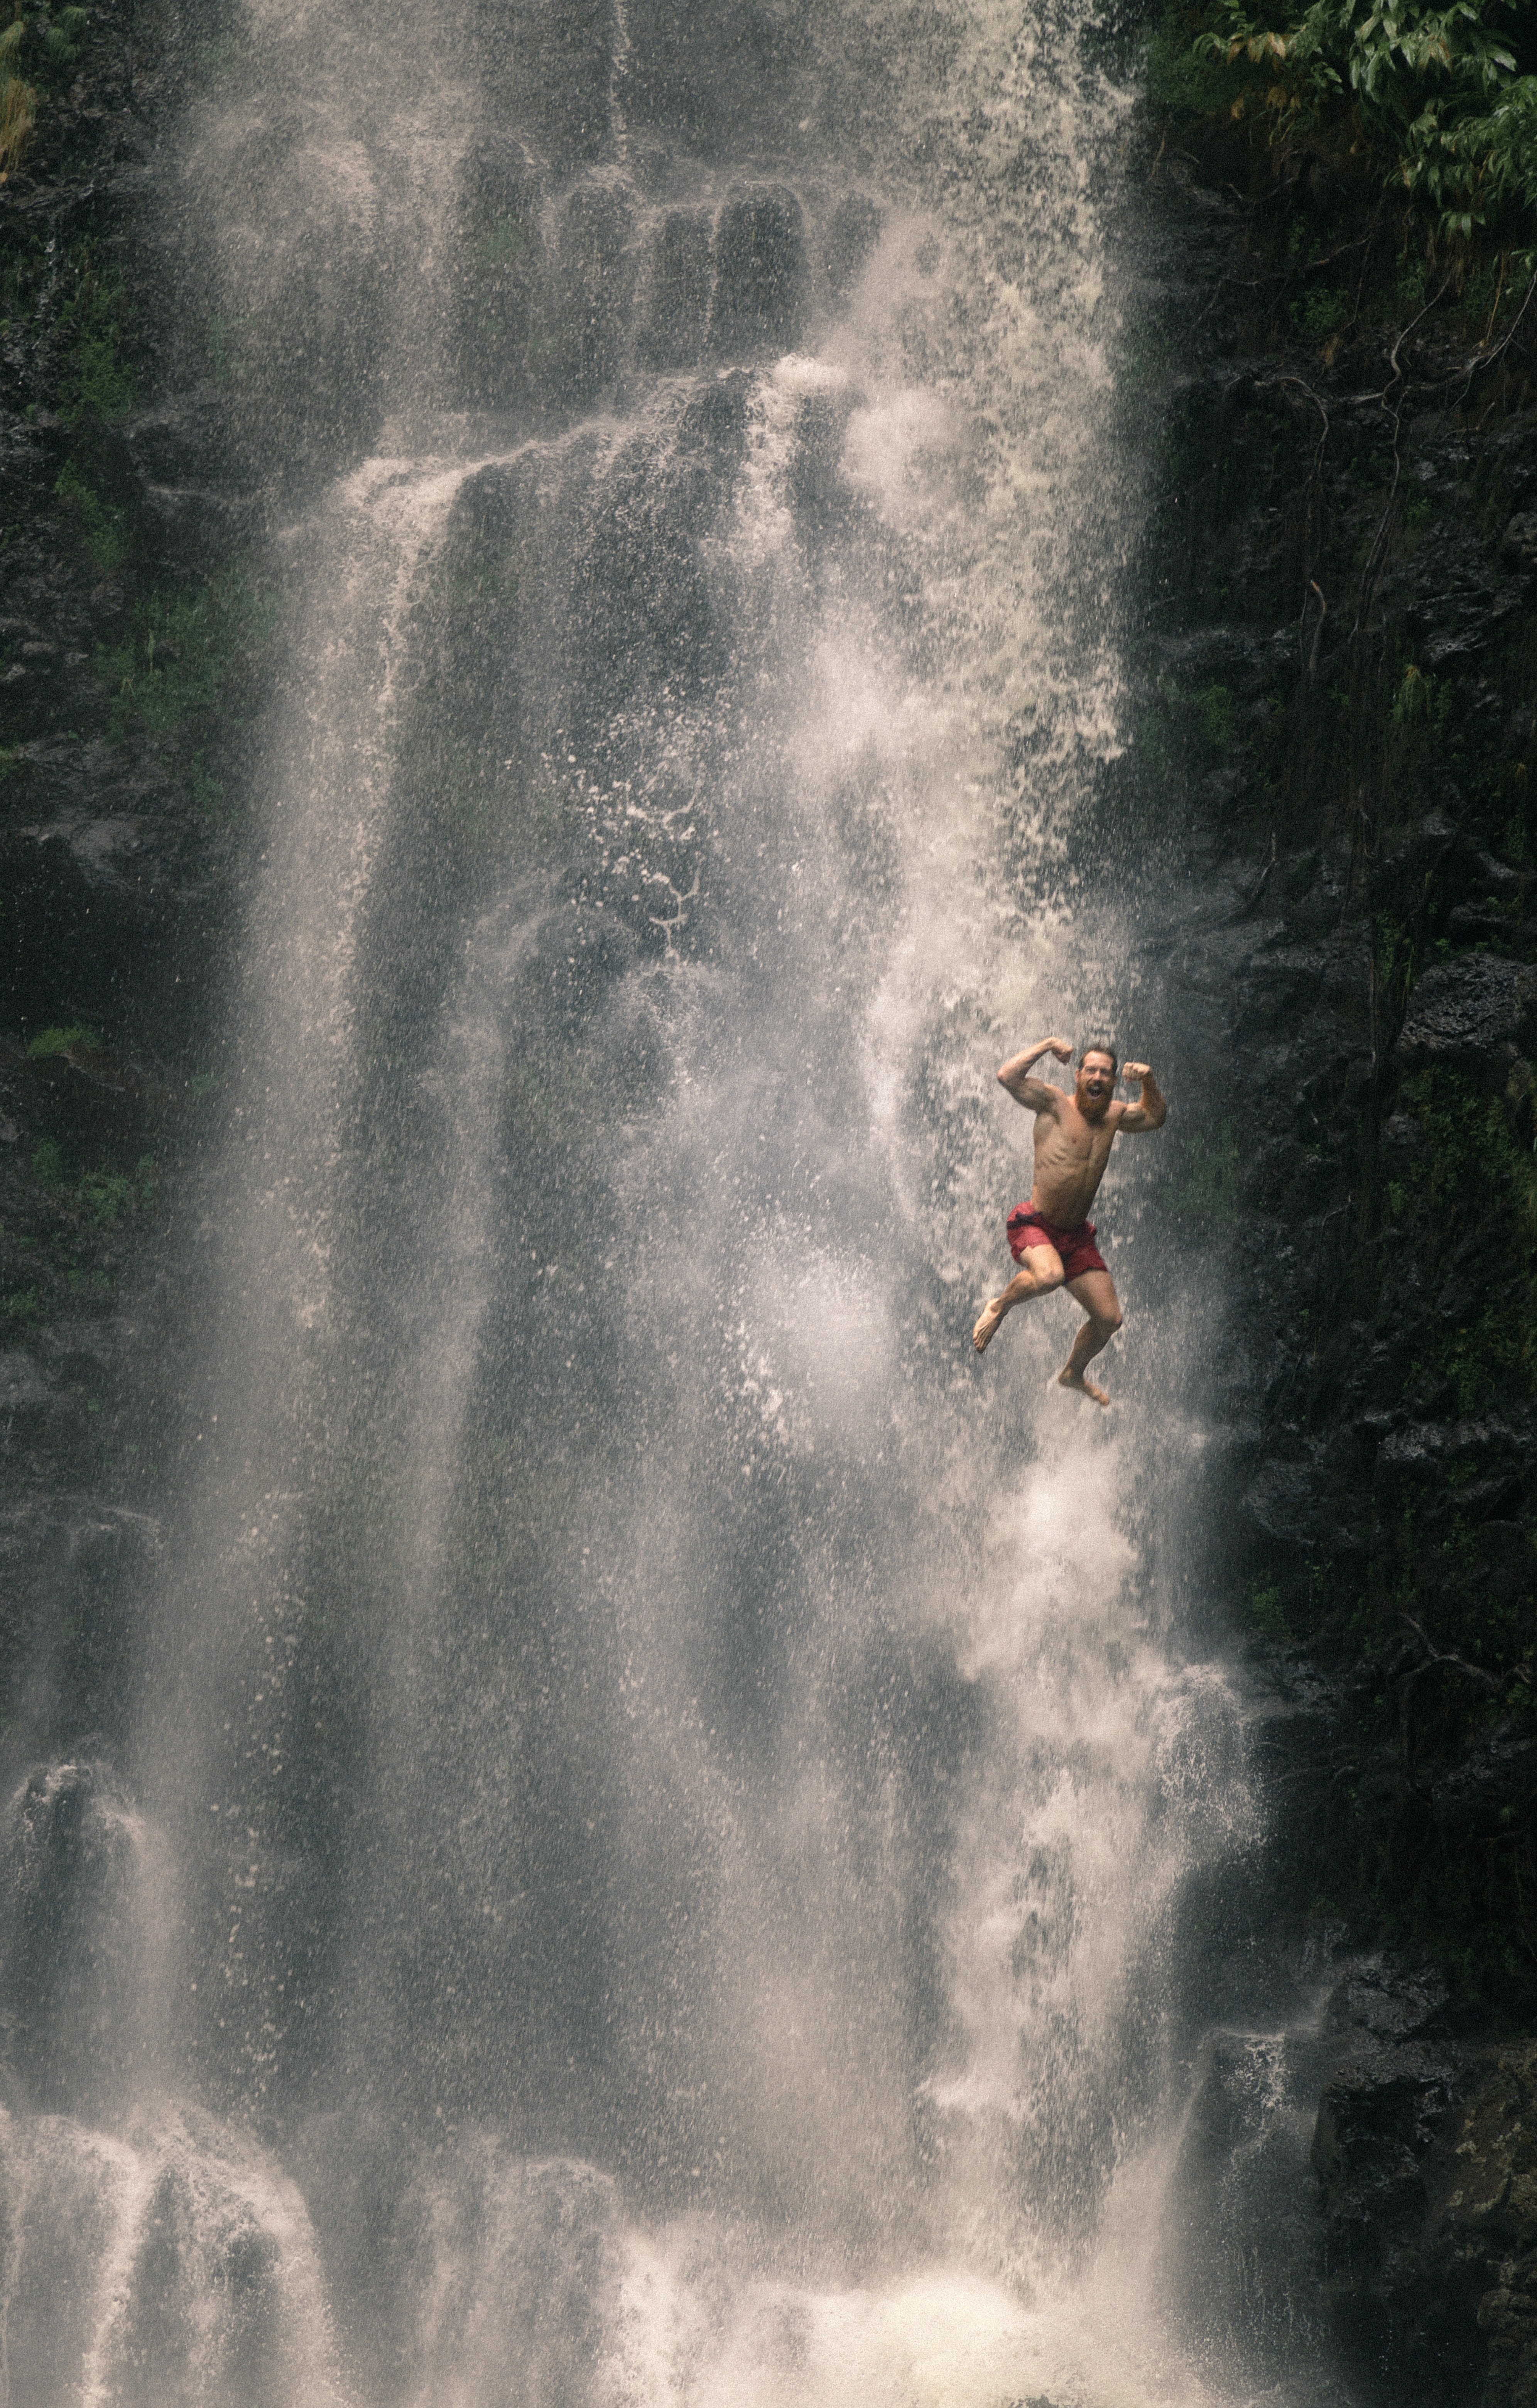 man in red shorts jumping along water